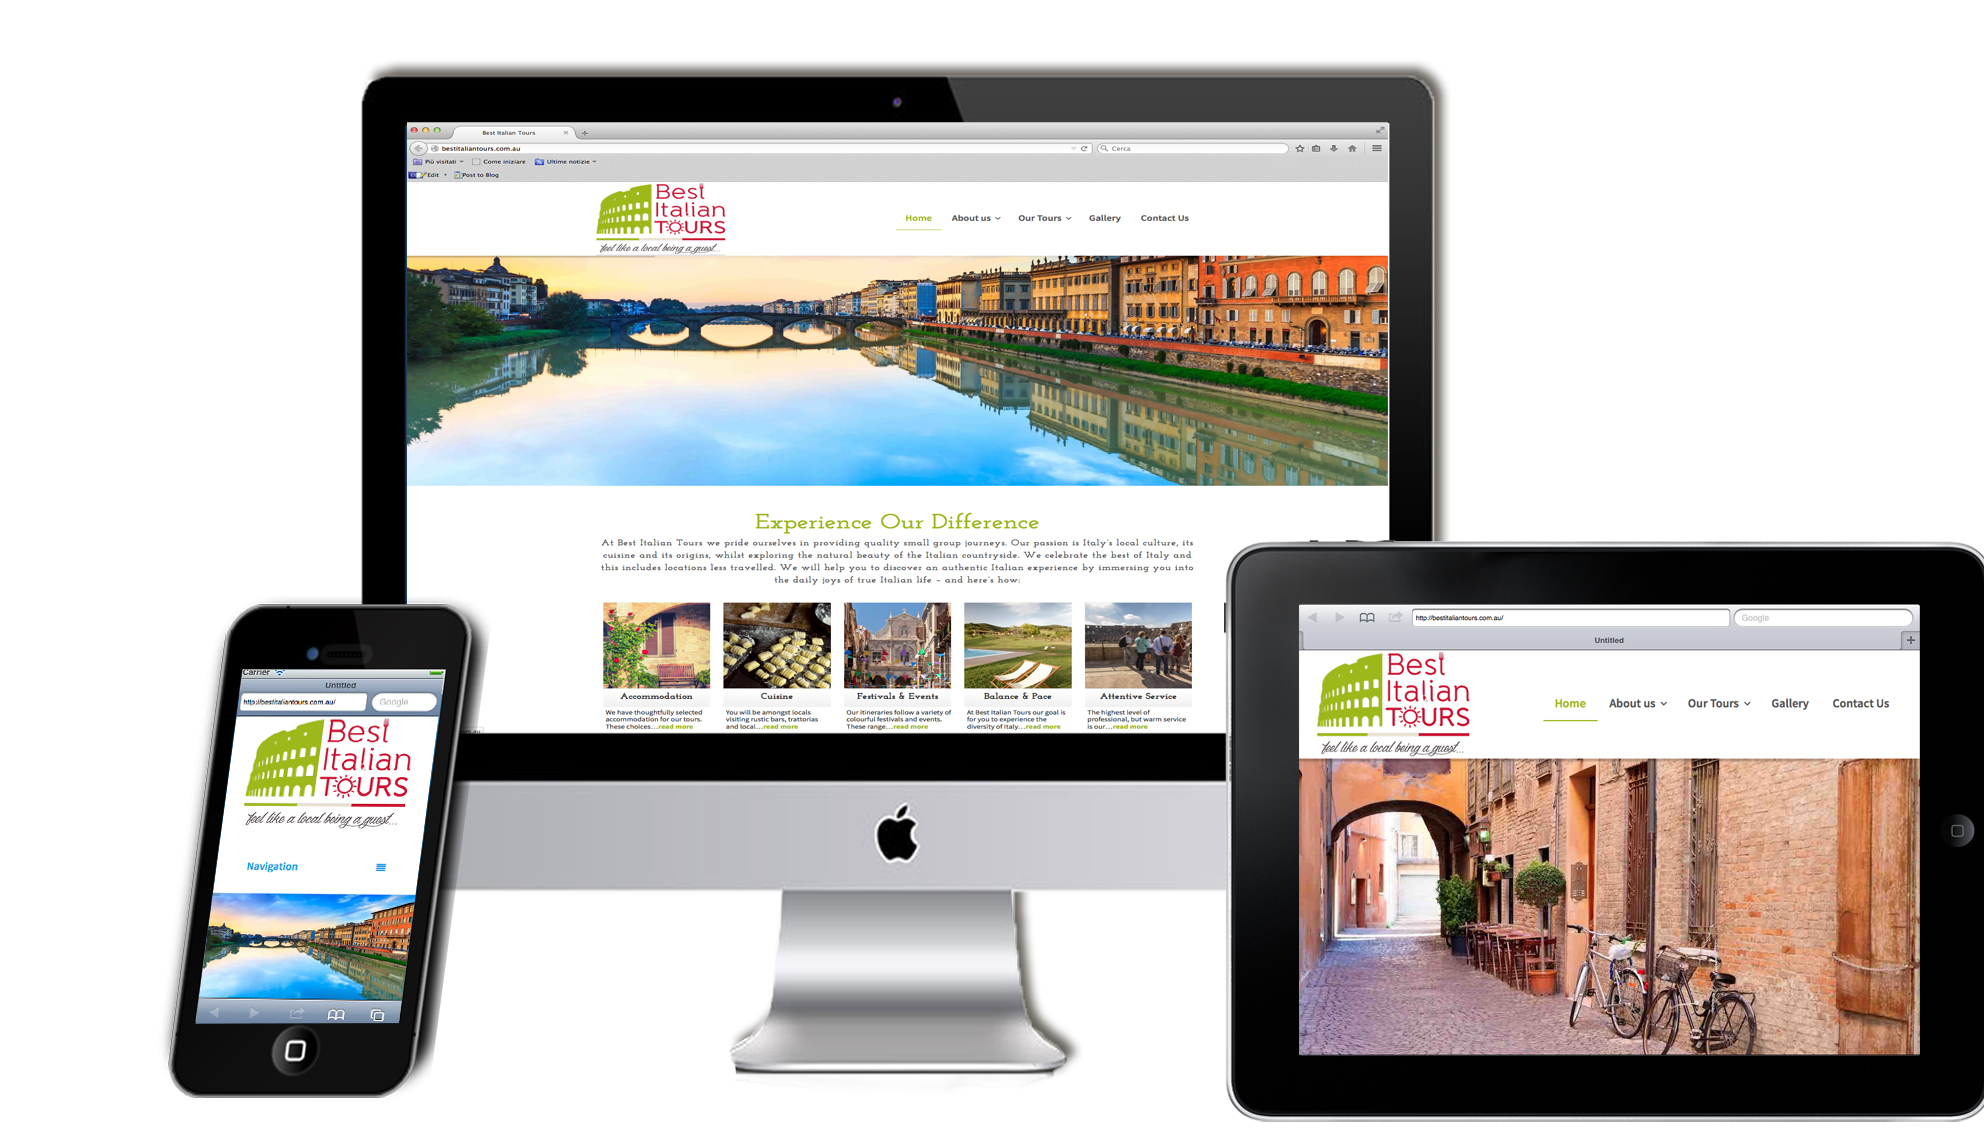 Best Italian Tours: sito web